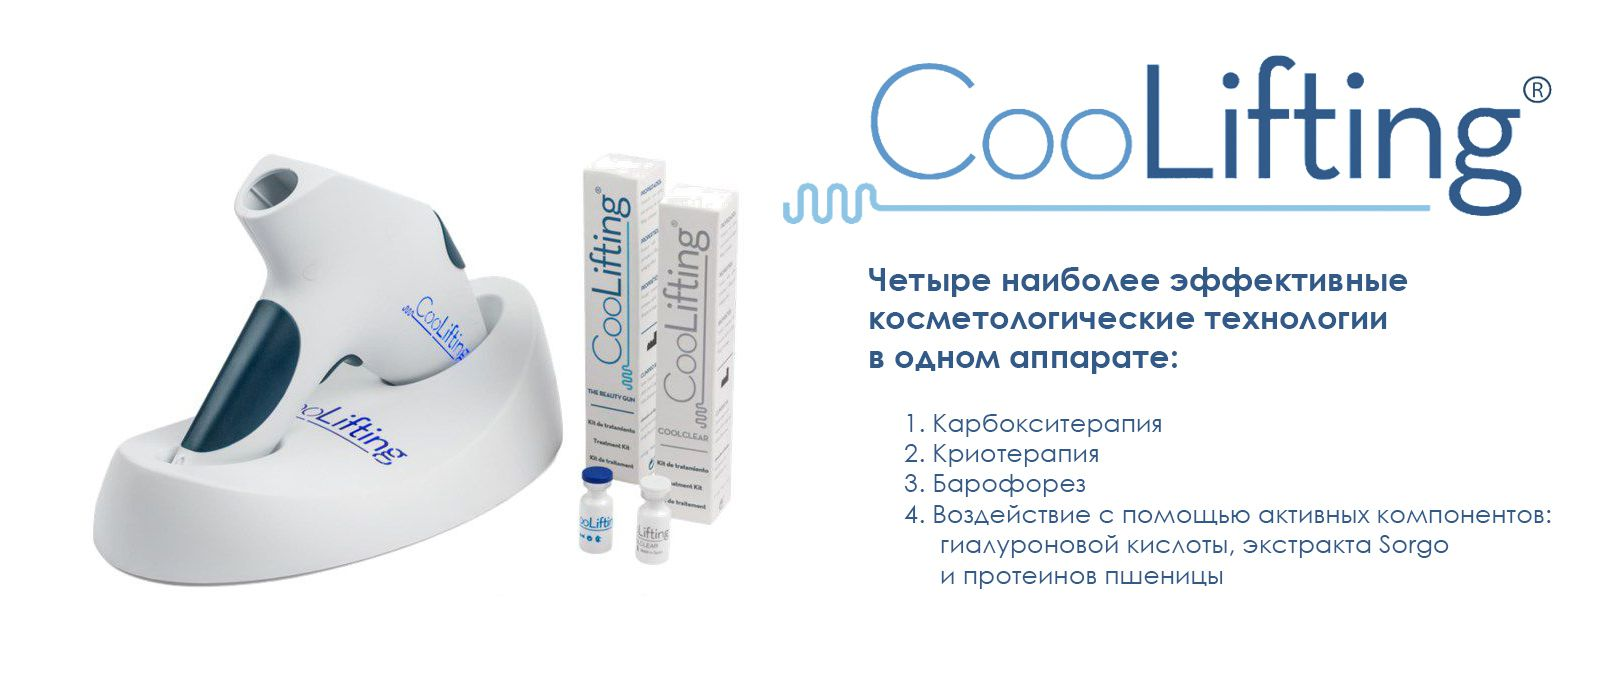 аппарат coolifting (куллифтинг)